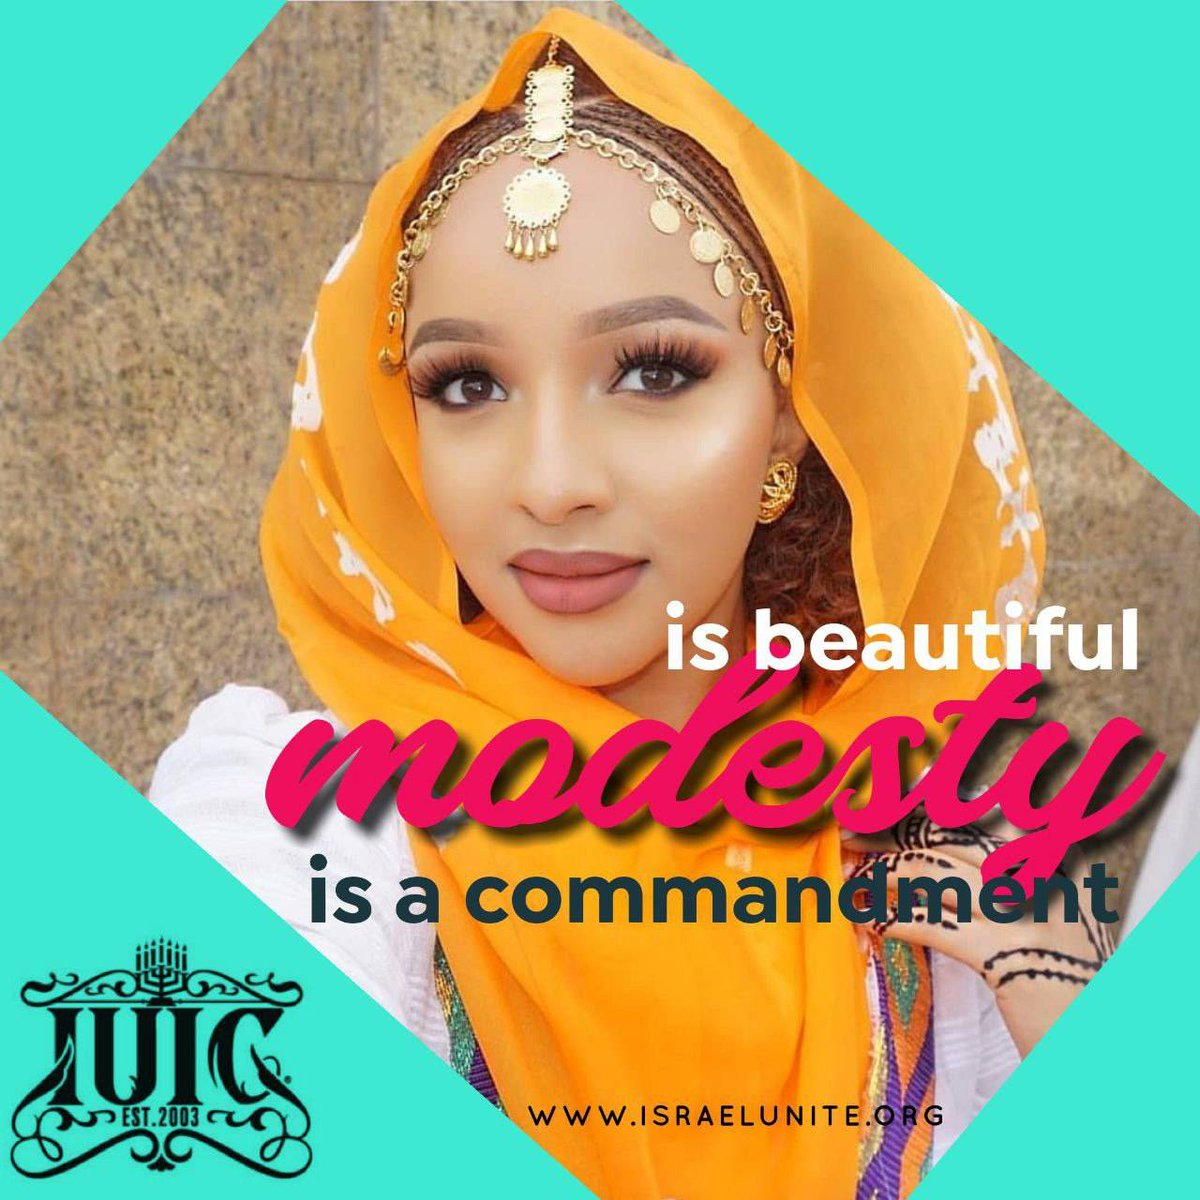 Let your modesty shine!!!   1 Timothy 2:9 [9]In like manner also, that women adorn themselves in modest apparel, with shamefacedness and sobriety; not with broided hair, or gold, or pearls, or costly array;  #Beautiful #Modesty #ModestApparel #Shamefaced #KeeptheCommandmentspic.twitter.com/vF1kcBkeWR